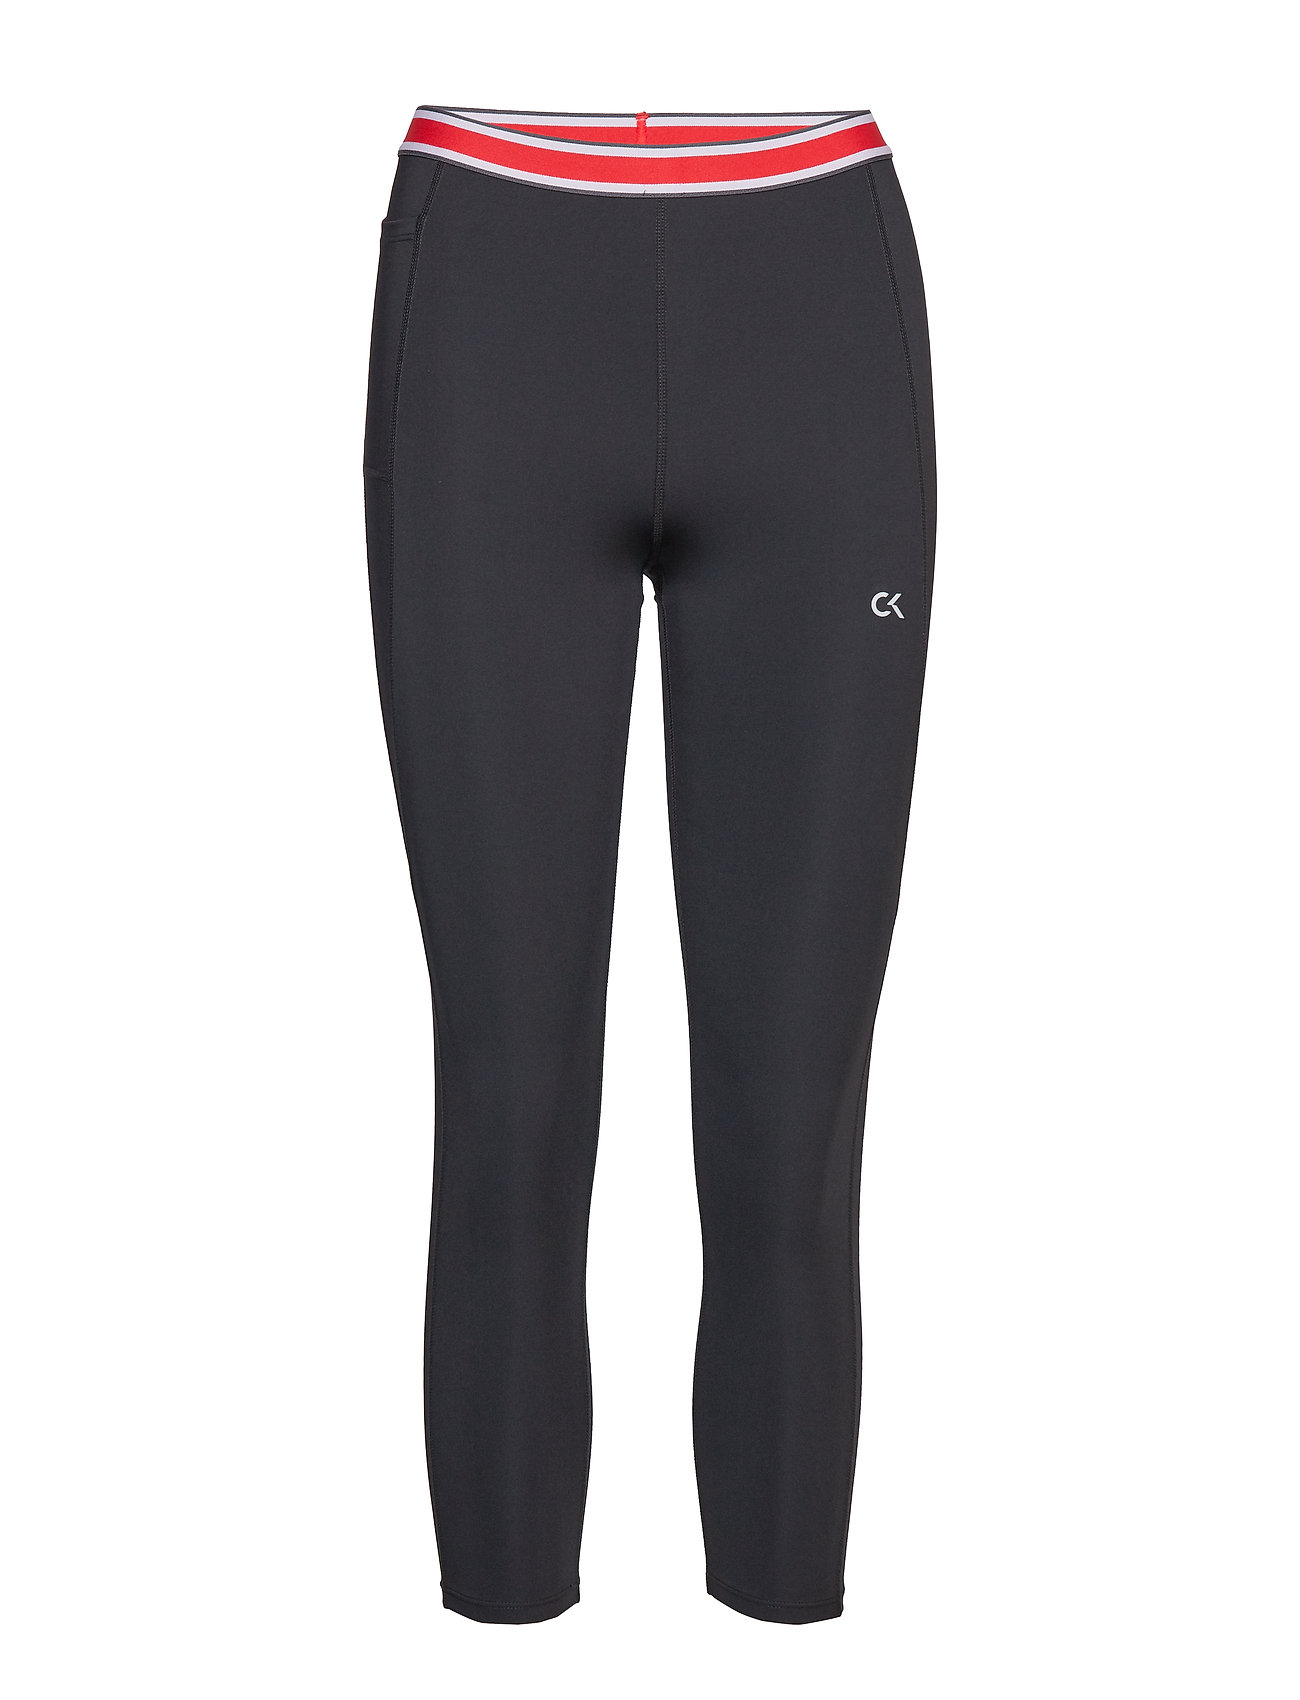 Calvin Klein Performance CROP LENGTH TIGHT - CK BLACK